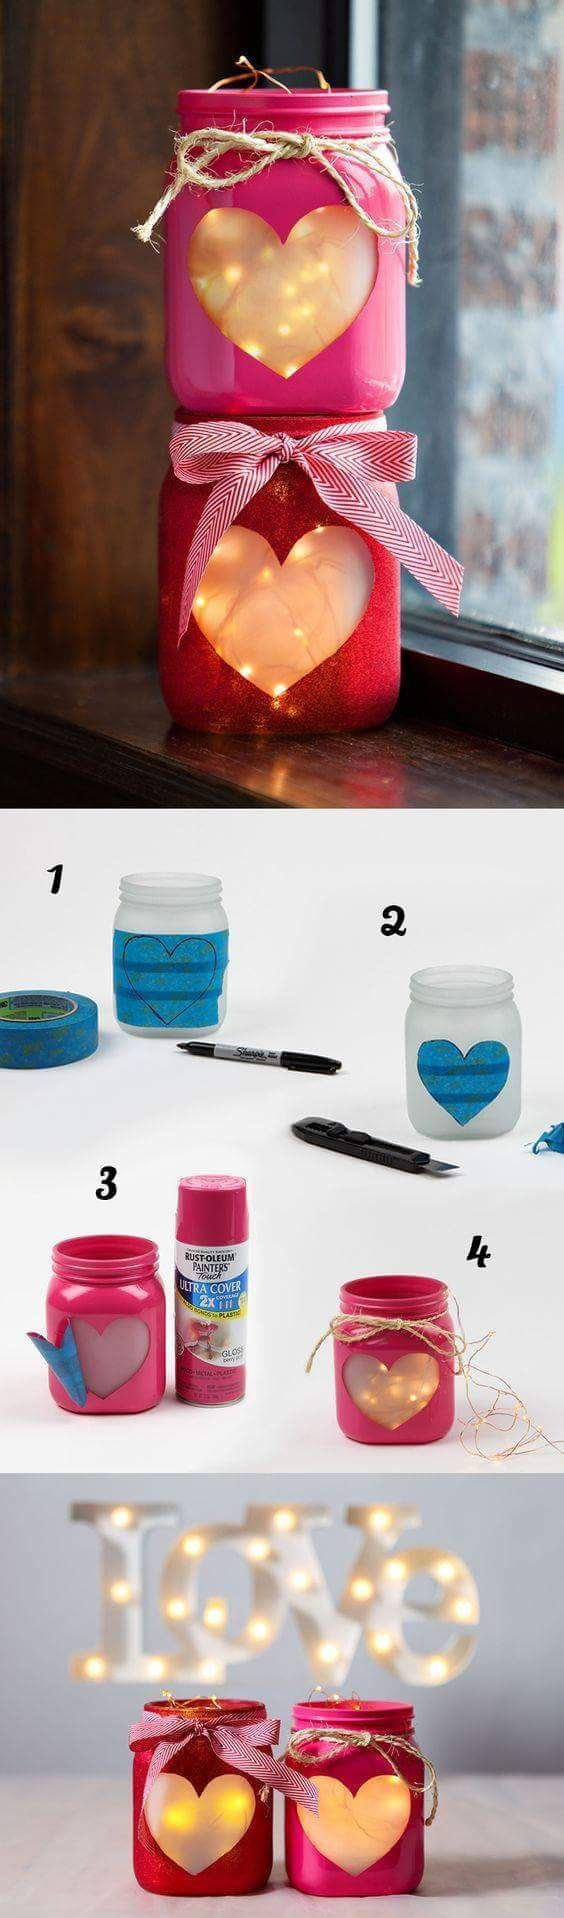 Illuminated Mason Jar Craft In Easy Steps